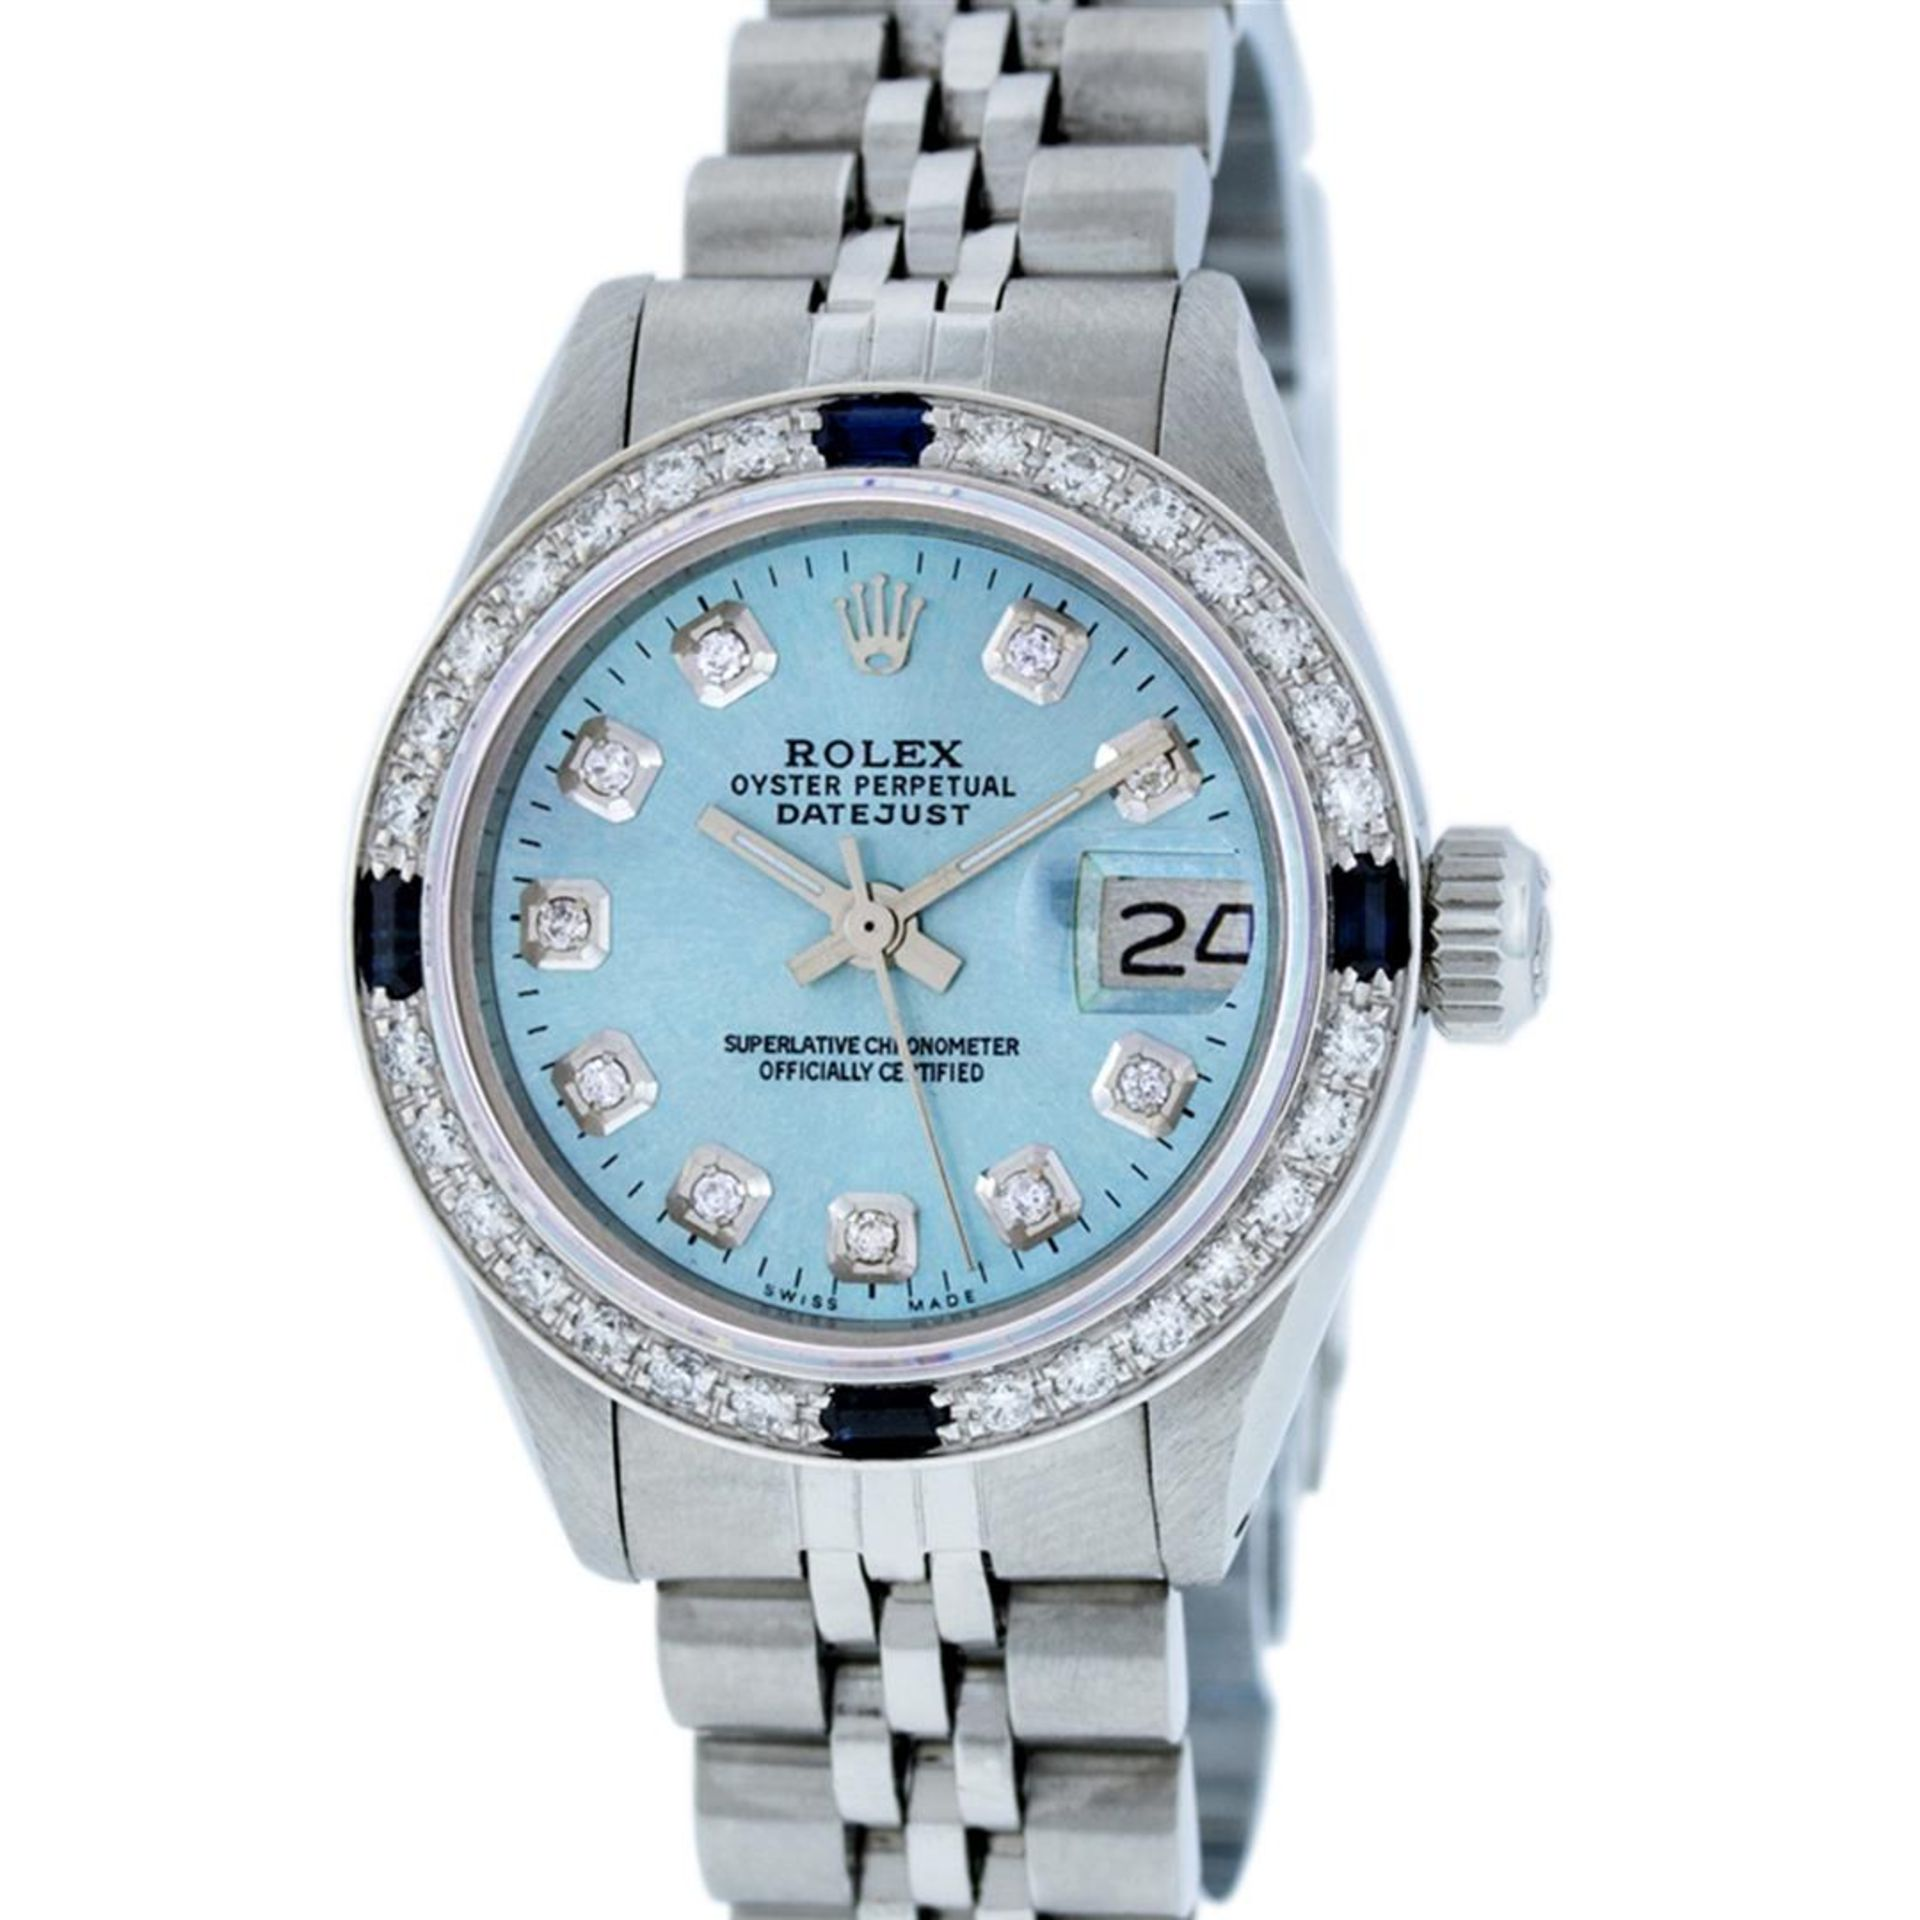 Rolex Ladies Stainless Steel Sky Blue Diamond & Sapphire Datejust Wristwatch - Image 6 of 9